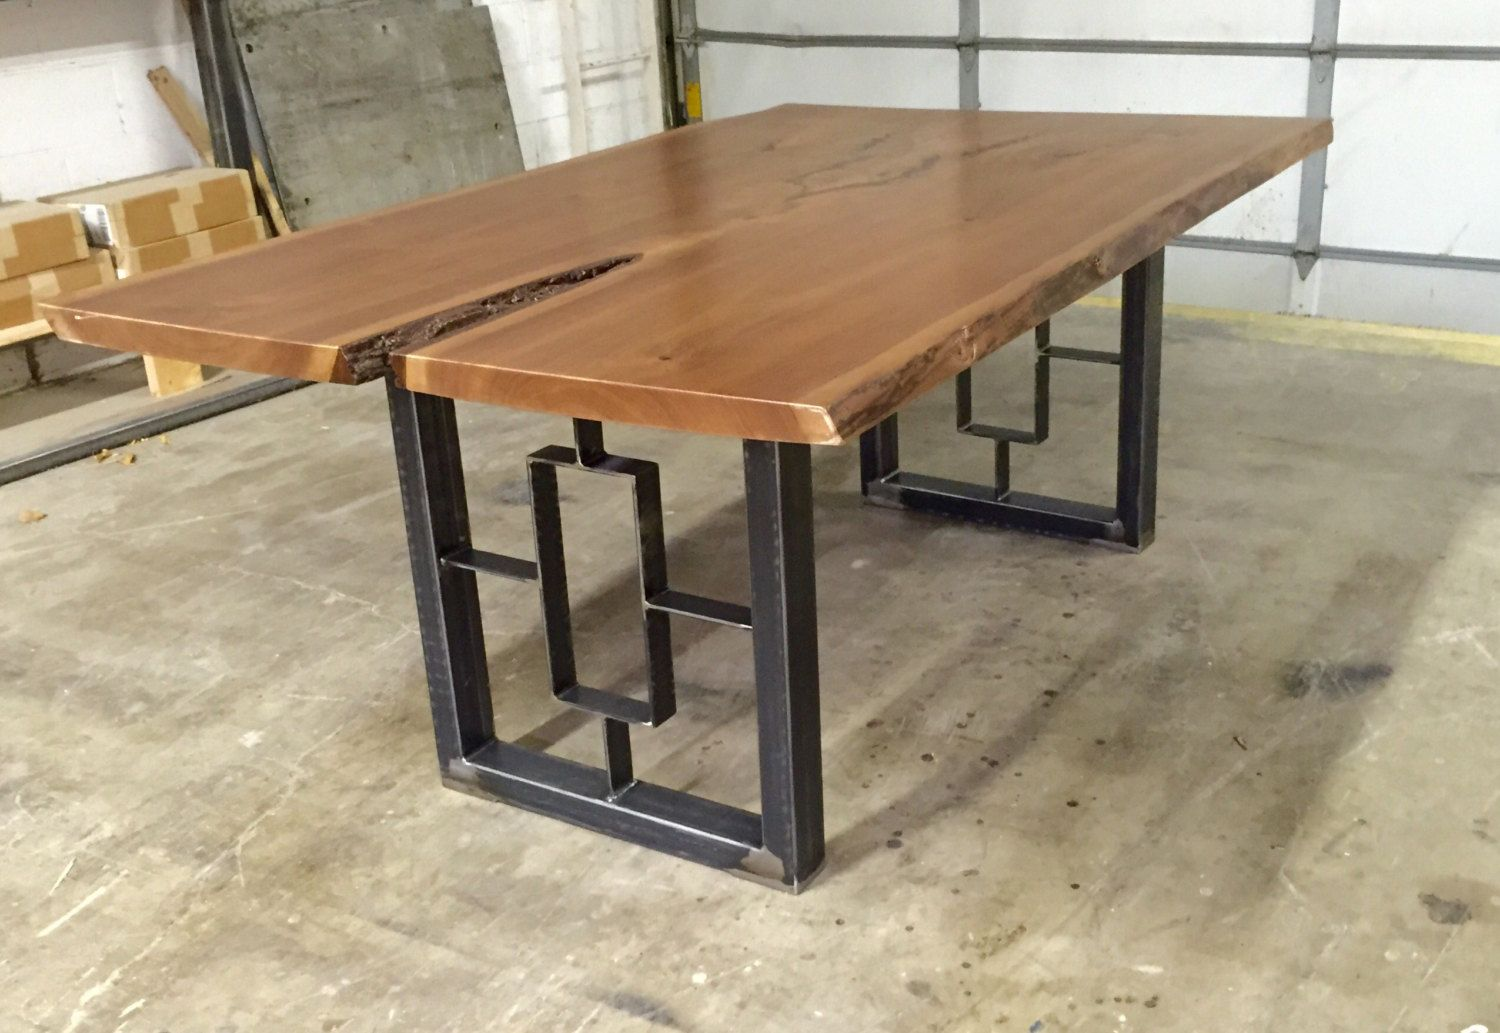 Contemporary dining table bases  SquareRectangular Modern Dining Table Legs Industrial Legs  Table